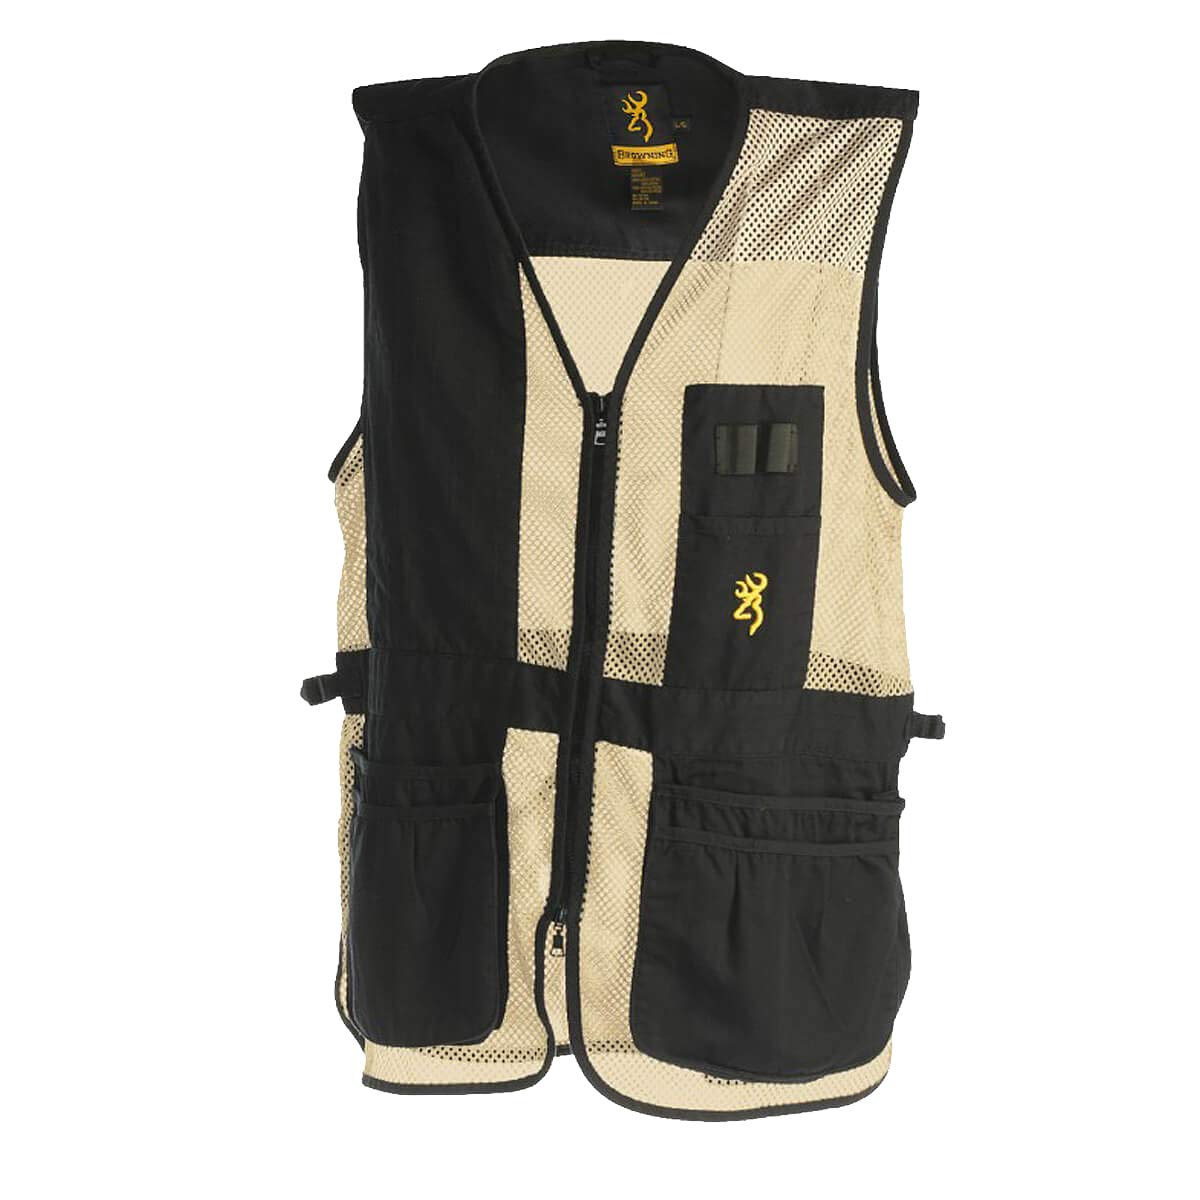 Browning, Trapper Creek Vest, Small, Black/Tan by Browning (Image #1)